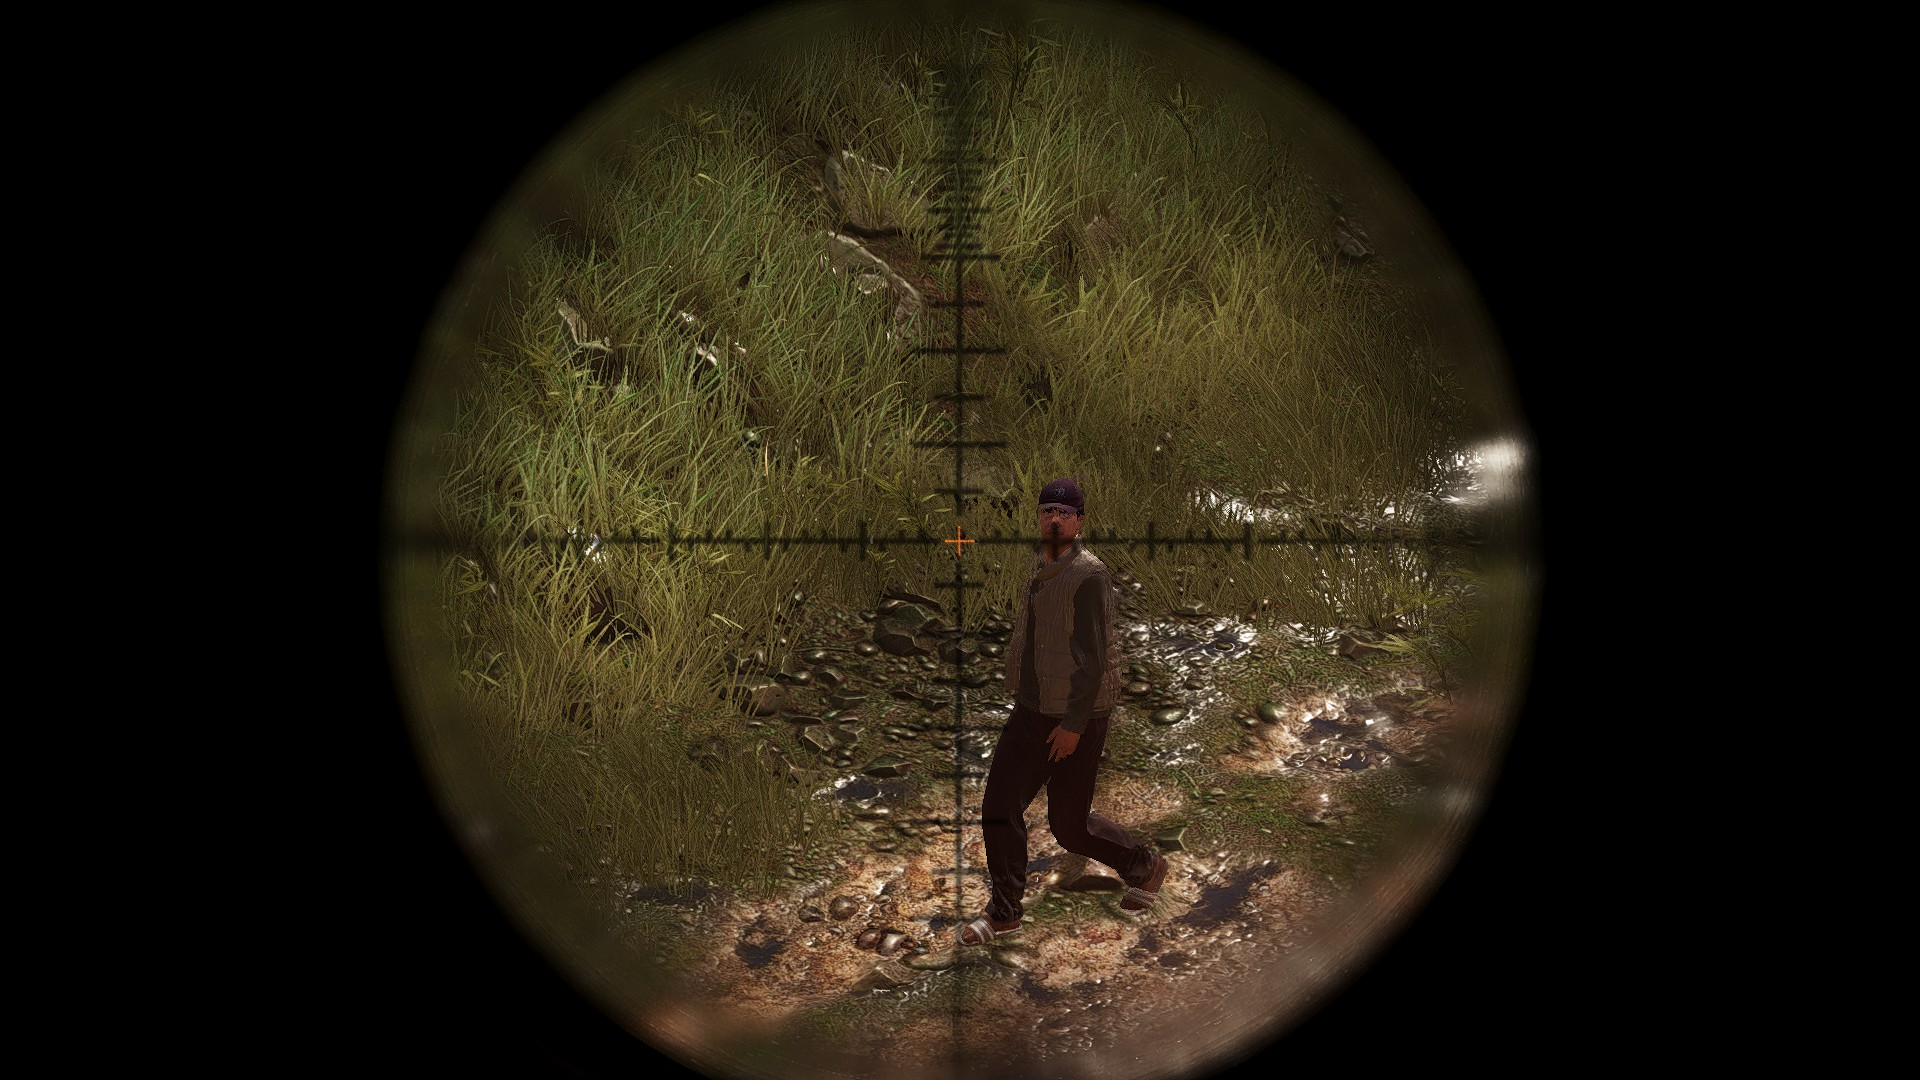 Here's what it looks like when you aim down sight with the T5Xi Tactical in Ghost Recon Wildlands.